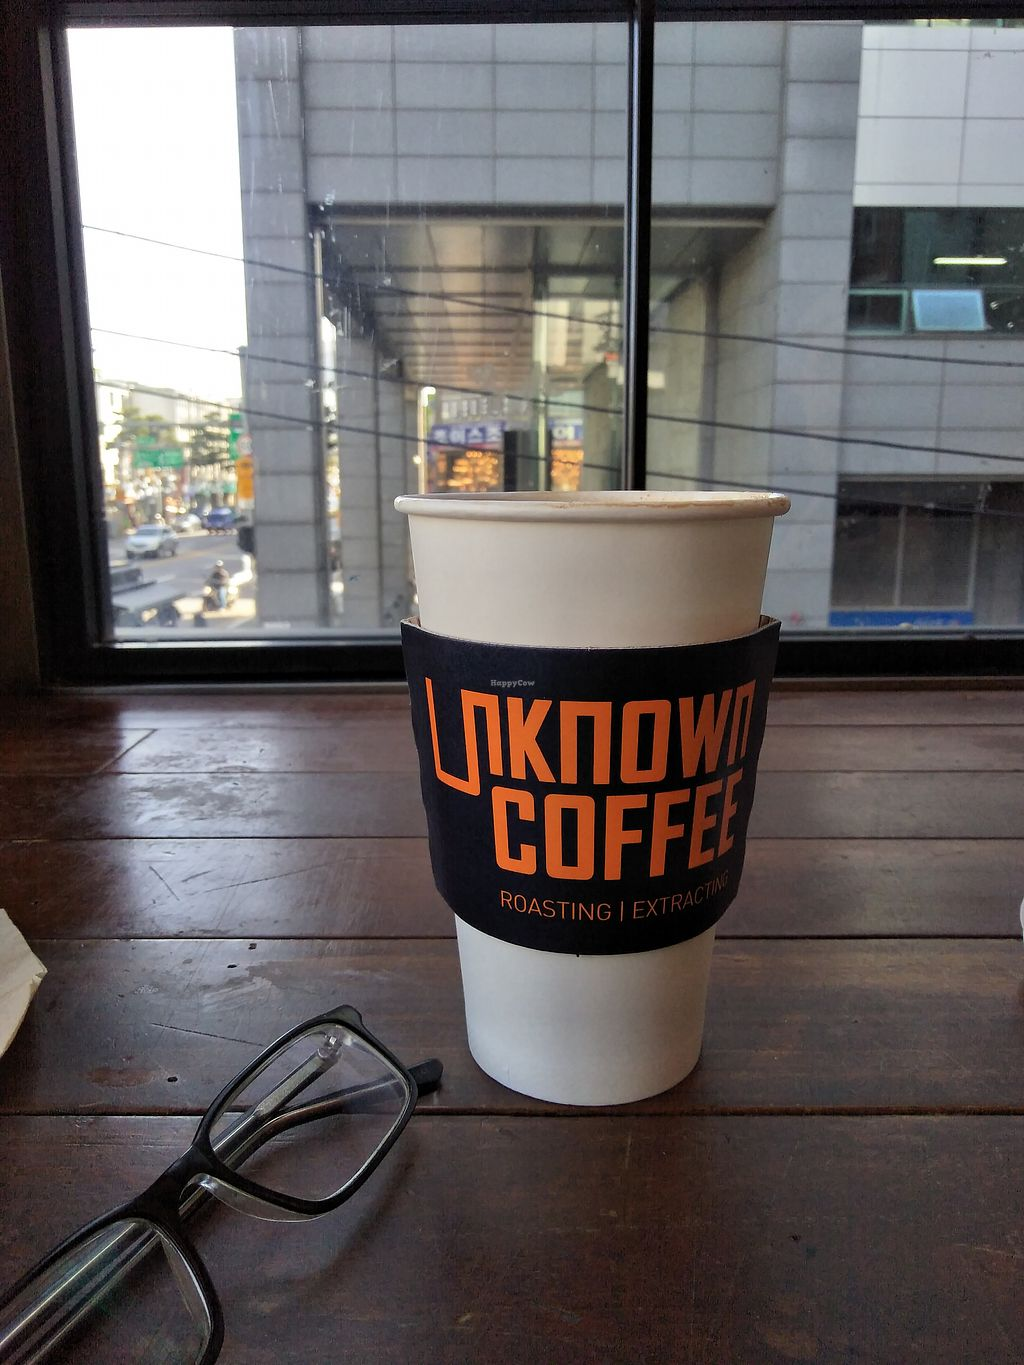 """Photo of Unknown Coffee - 언노운커피  by <a href=""""/members/profile/MichaelRobinson"""">MichaelRobinson</a> <br/>My view <br/> March 25, 2018  - <a href='/contact/abuse/image/82116/375789'>Report</a>"""